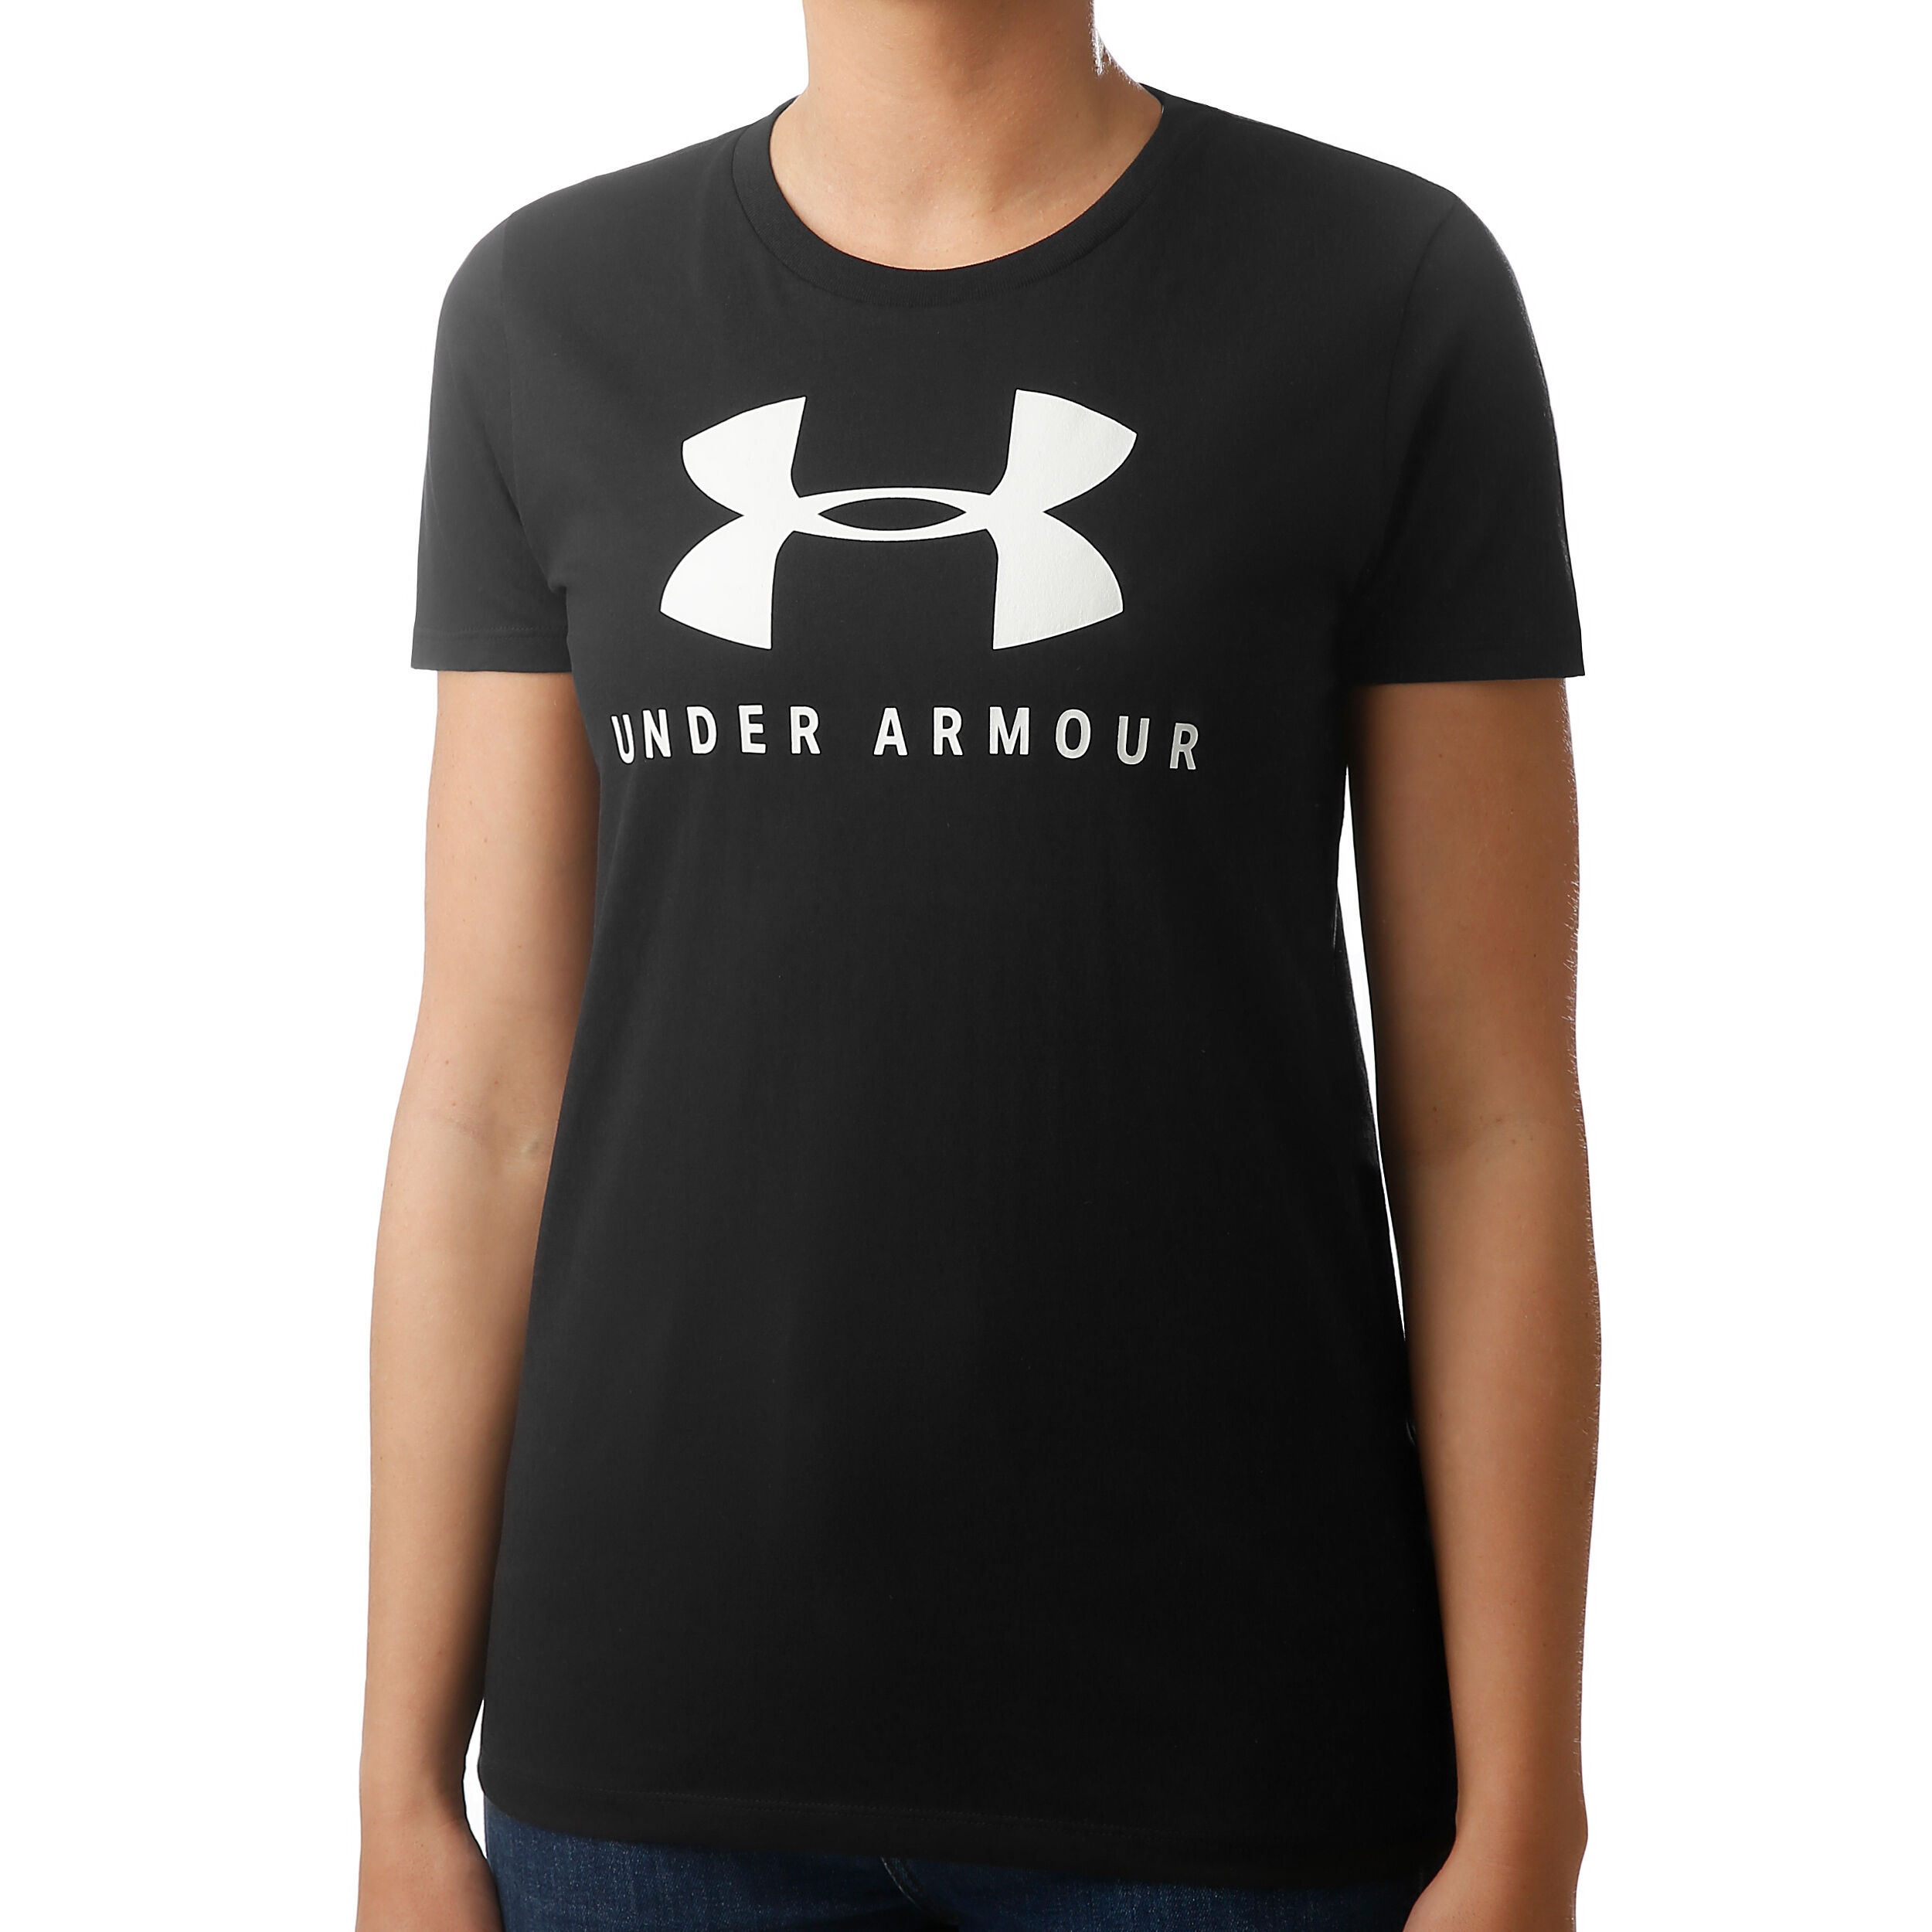 Blanc Taille Fabricant : XS FR Under Armour Graphic Classic T-Shirt Femme